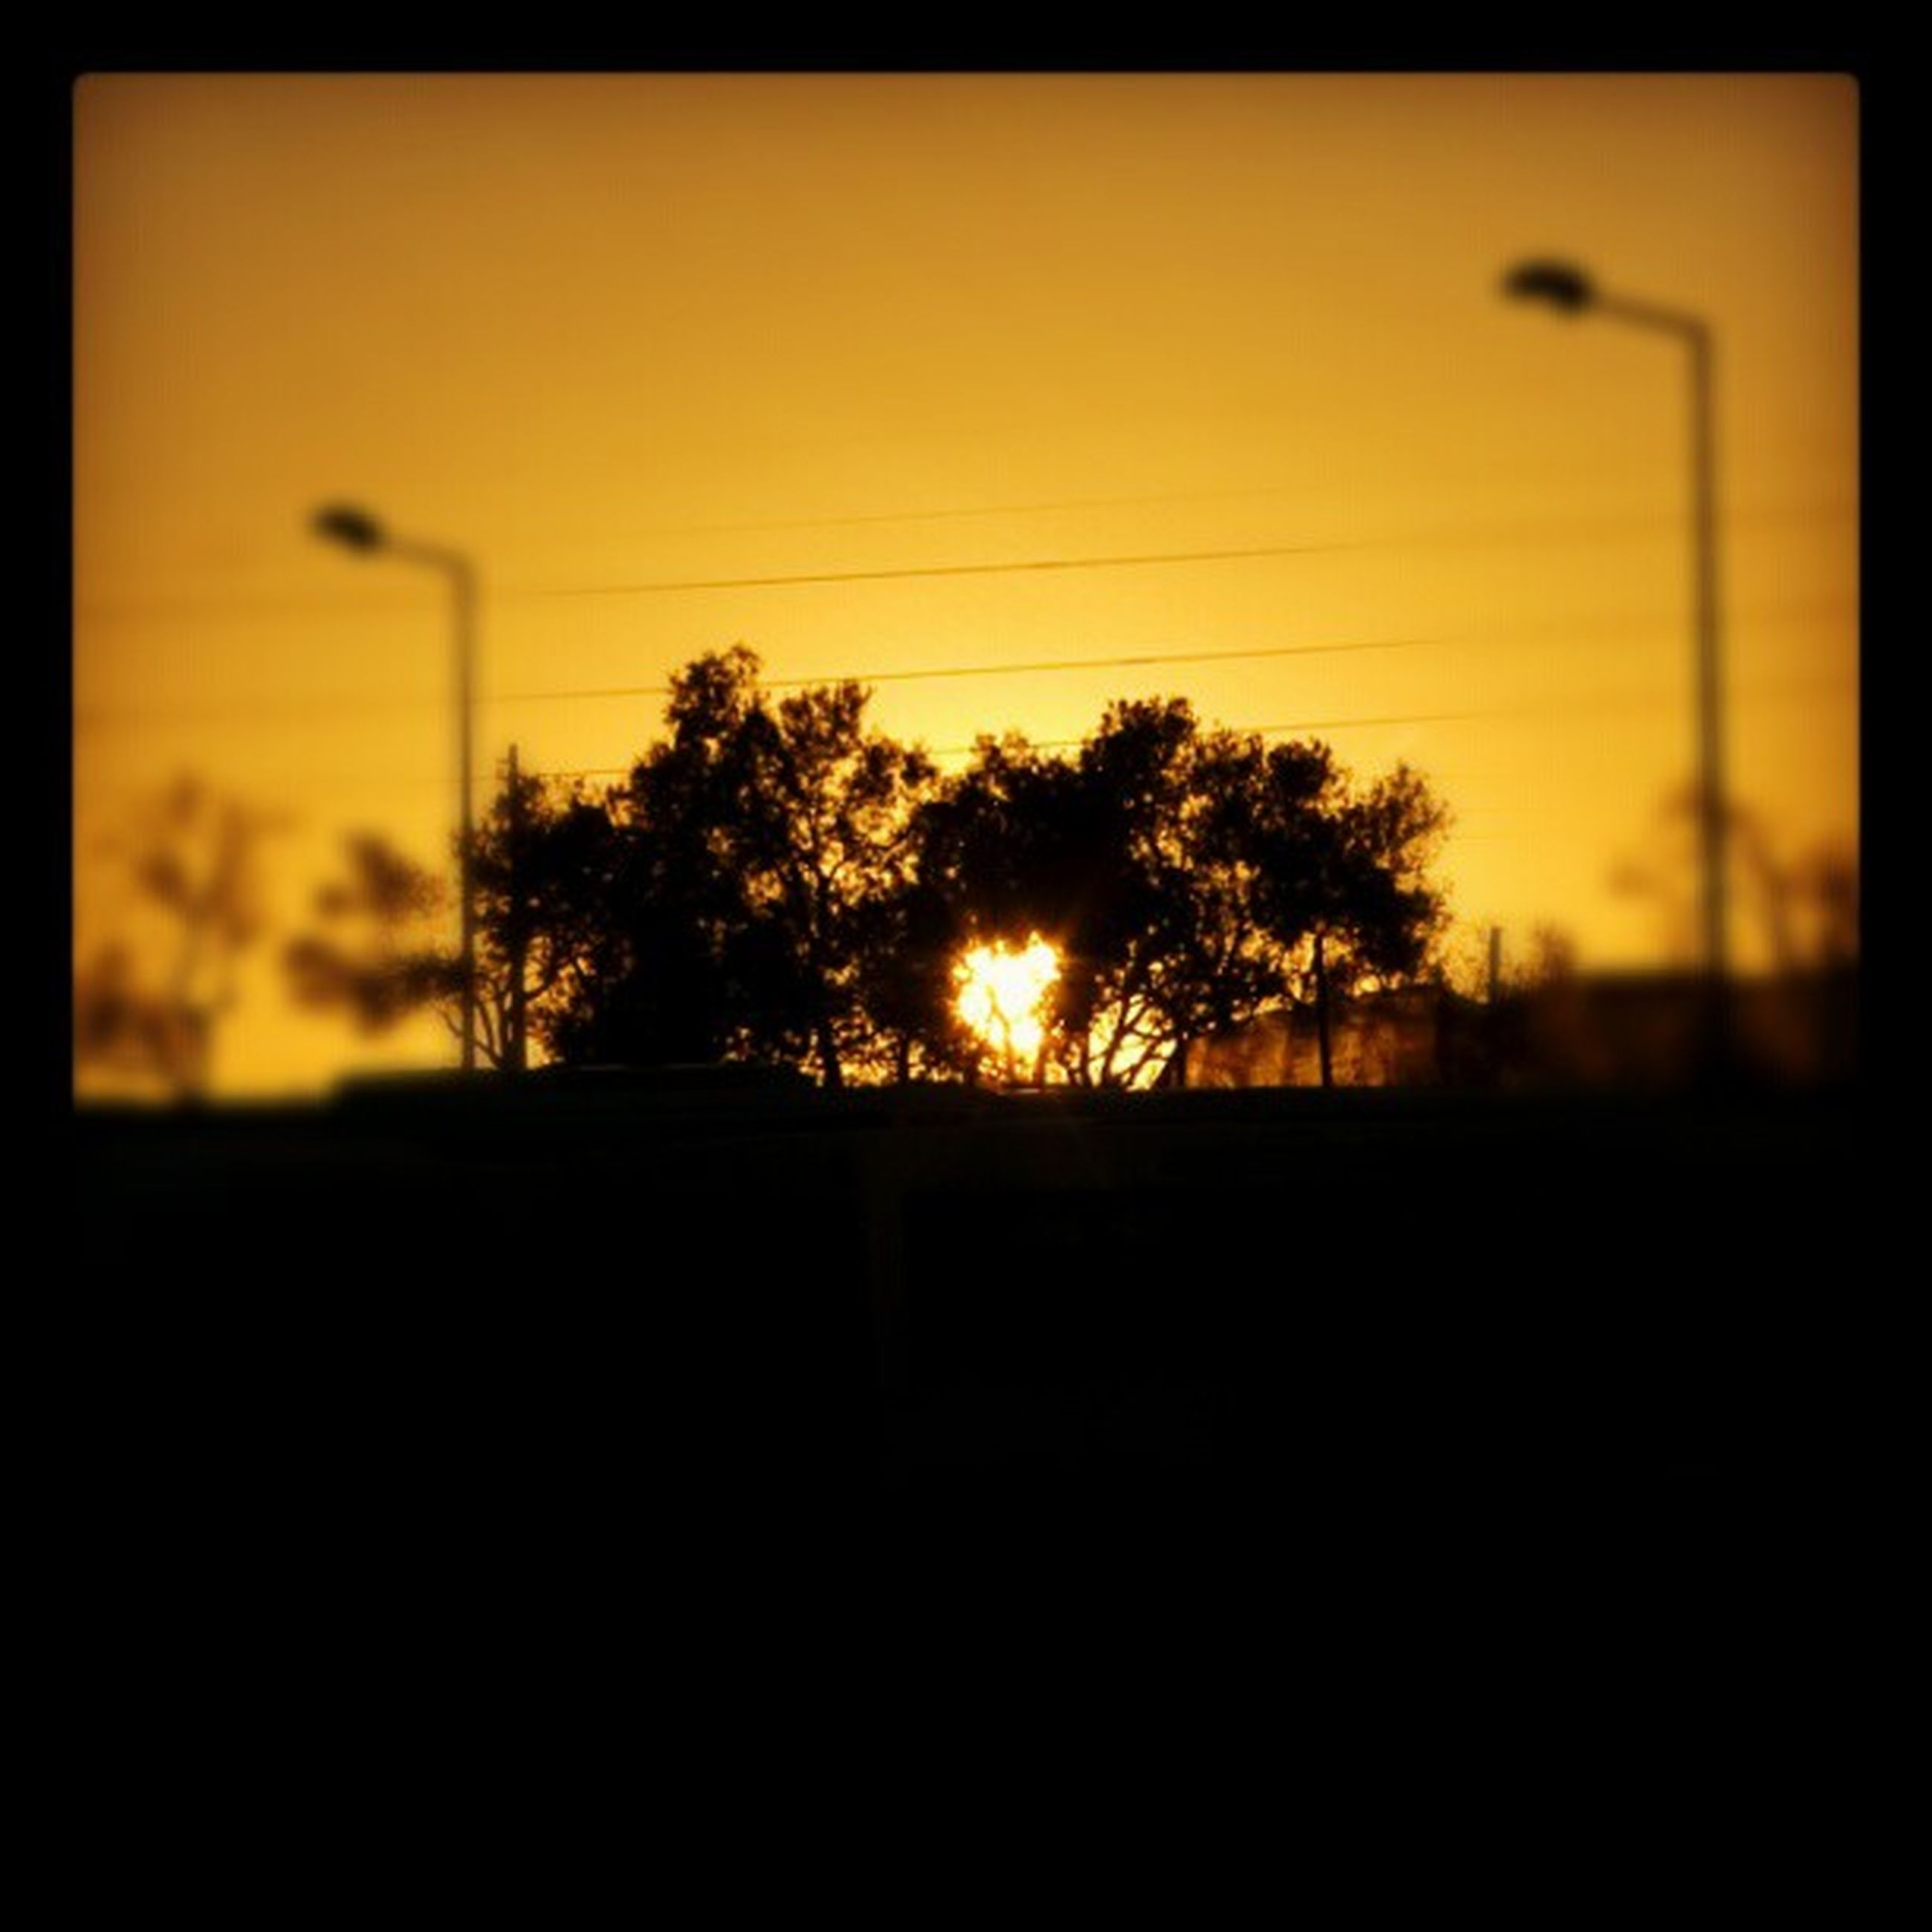 sunset, silhouette, orange color, sun, tree, tranquility, tranquil scene, scenics, beauty in nature, sky, dark, transfer print, nature, idyllic, copy space, landscape, outline, sunlight, auto post production filter, clear sky